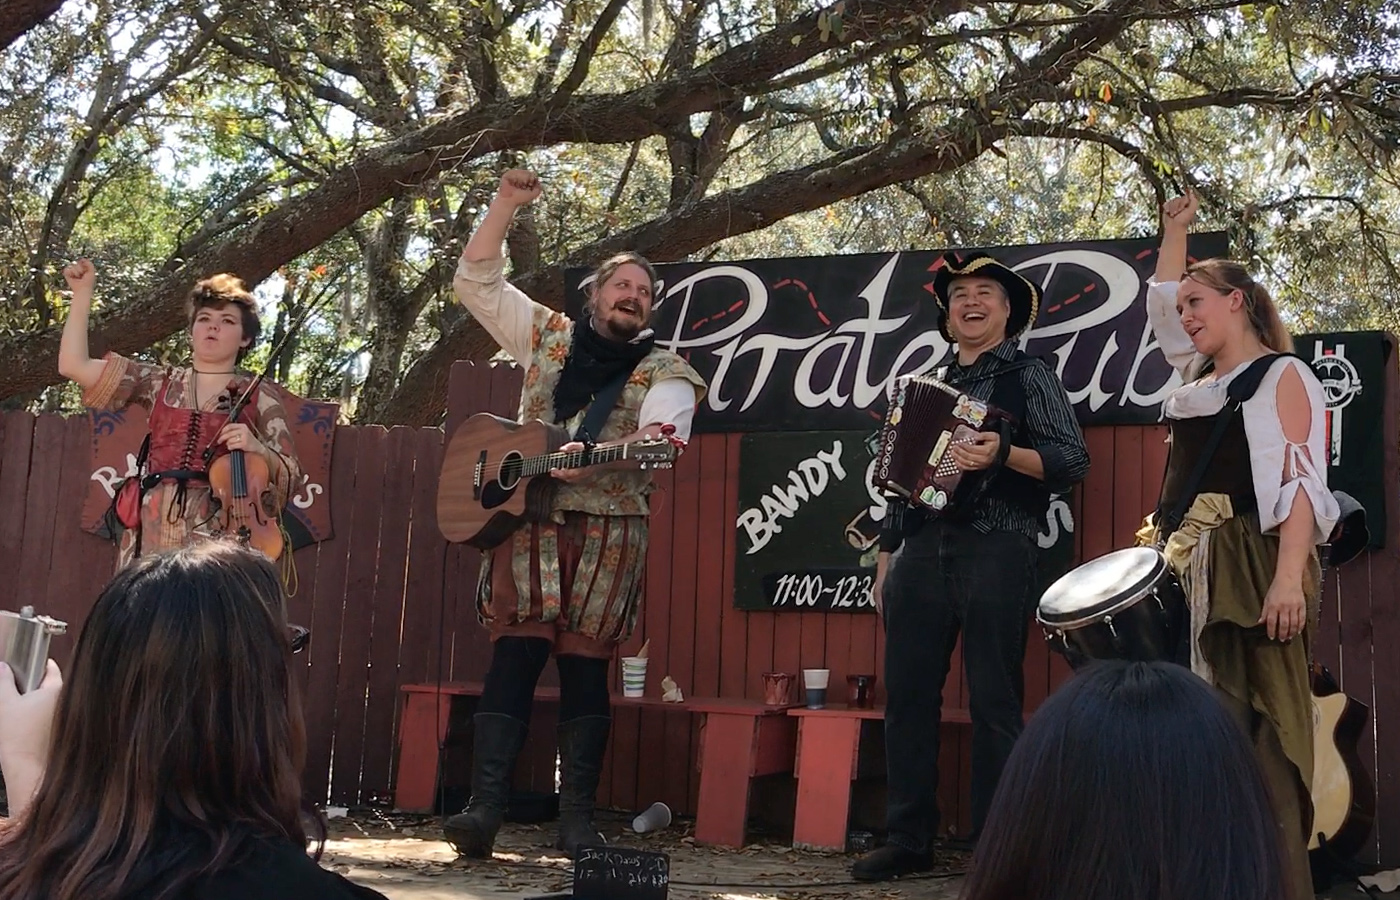 The Irish-American band The Jackdaws lead the audience with fists raised to cheer Joey deVilla. From left to right: Constance on violin, Whiplash on Guitar, Joey deVilla on accordion, and Roxy on the drum.